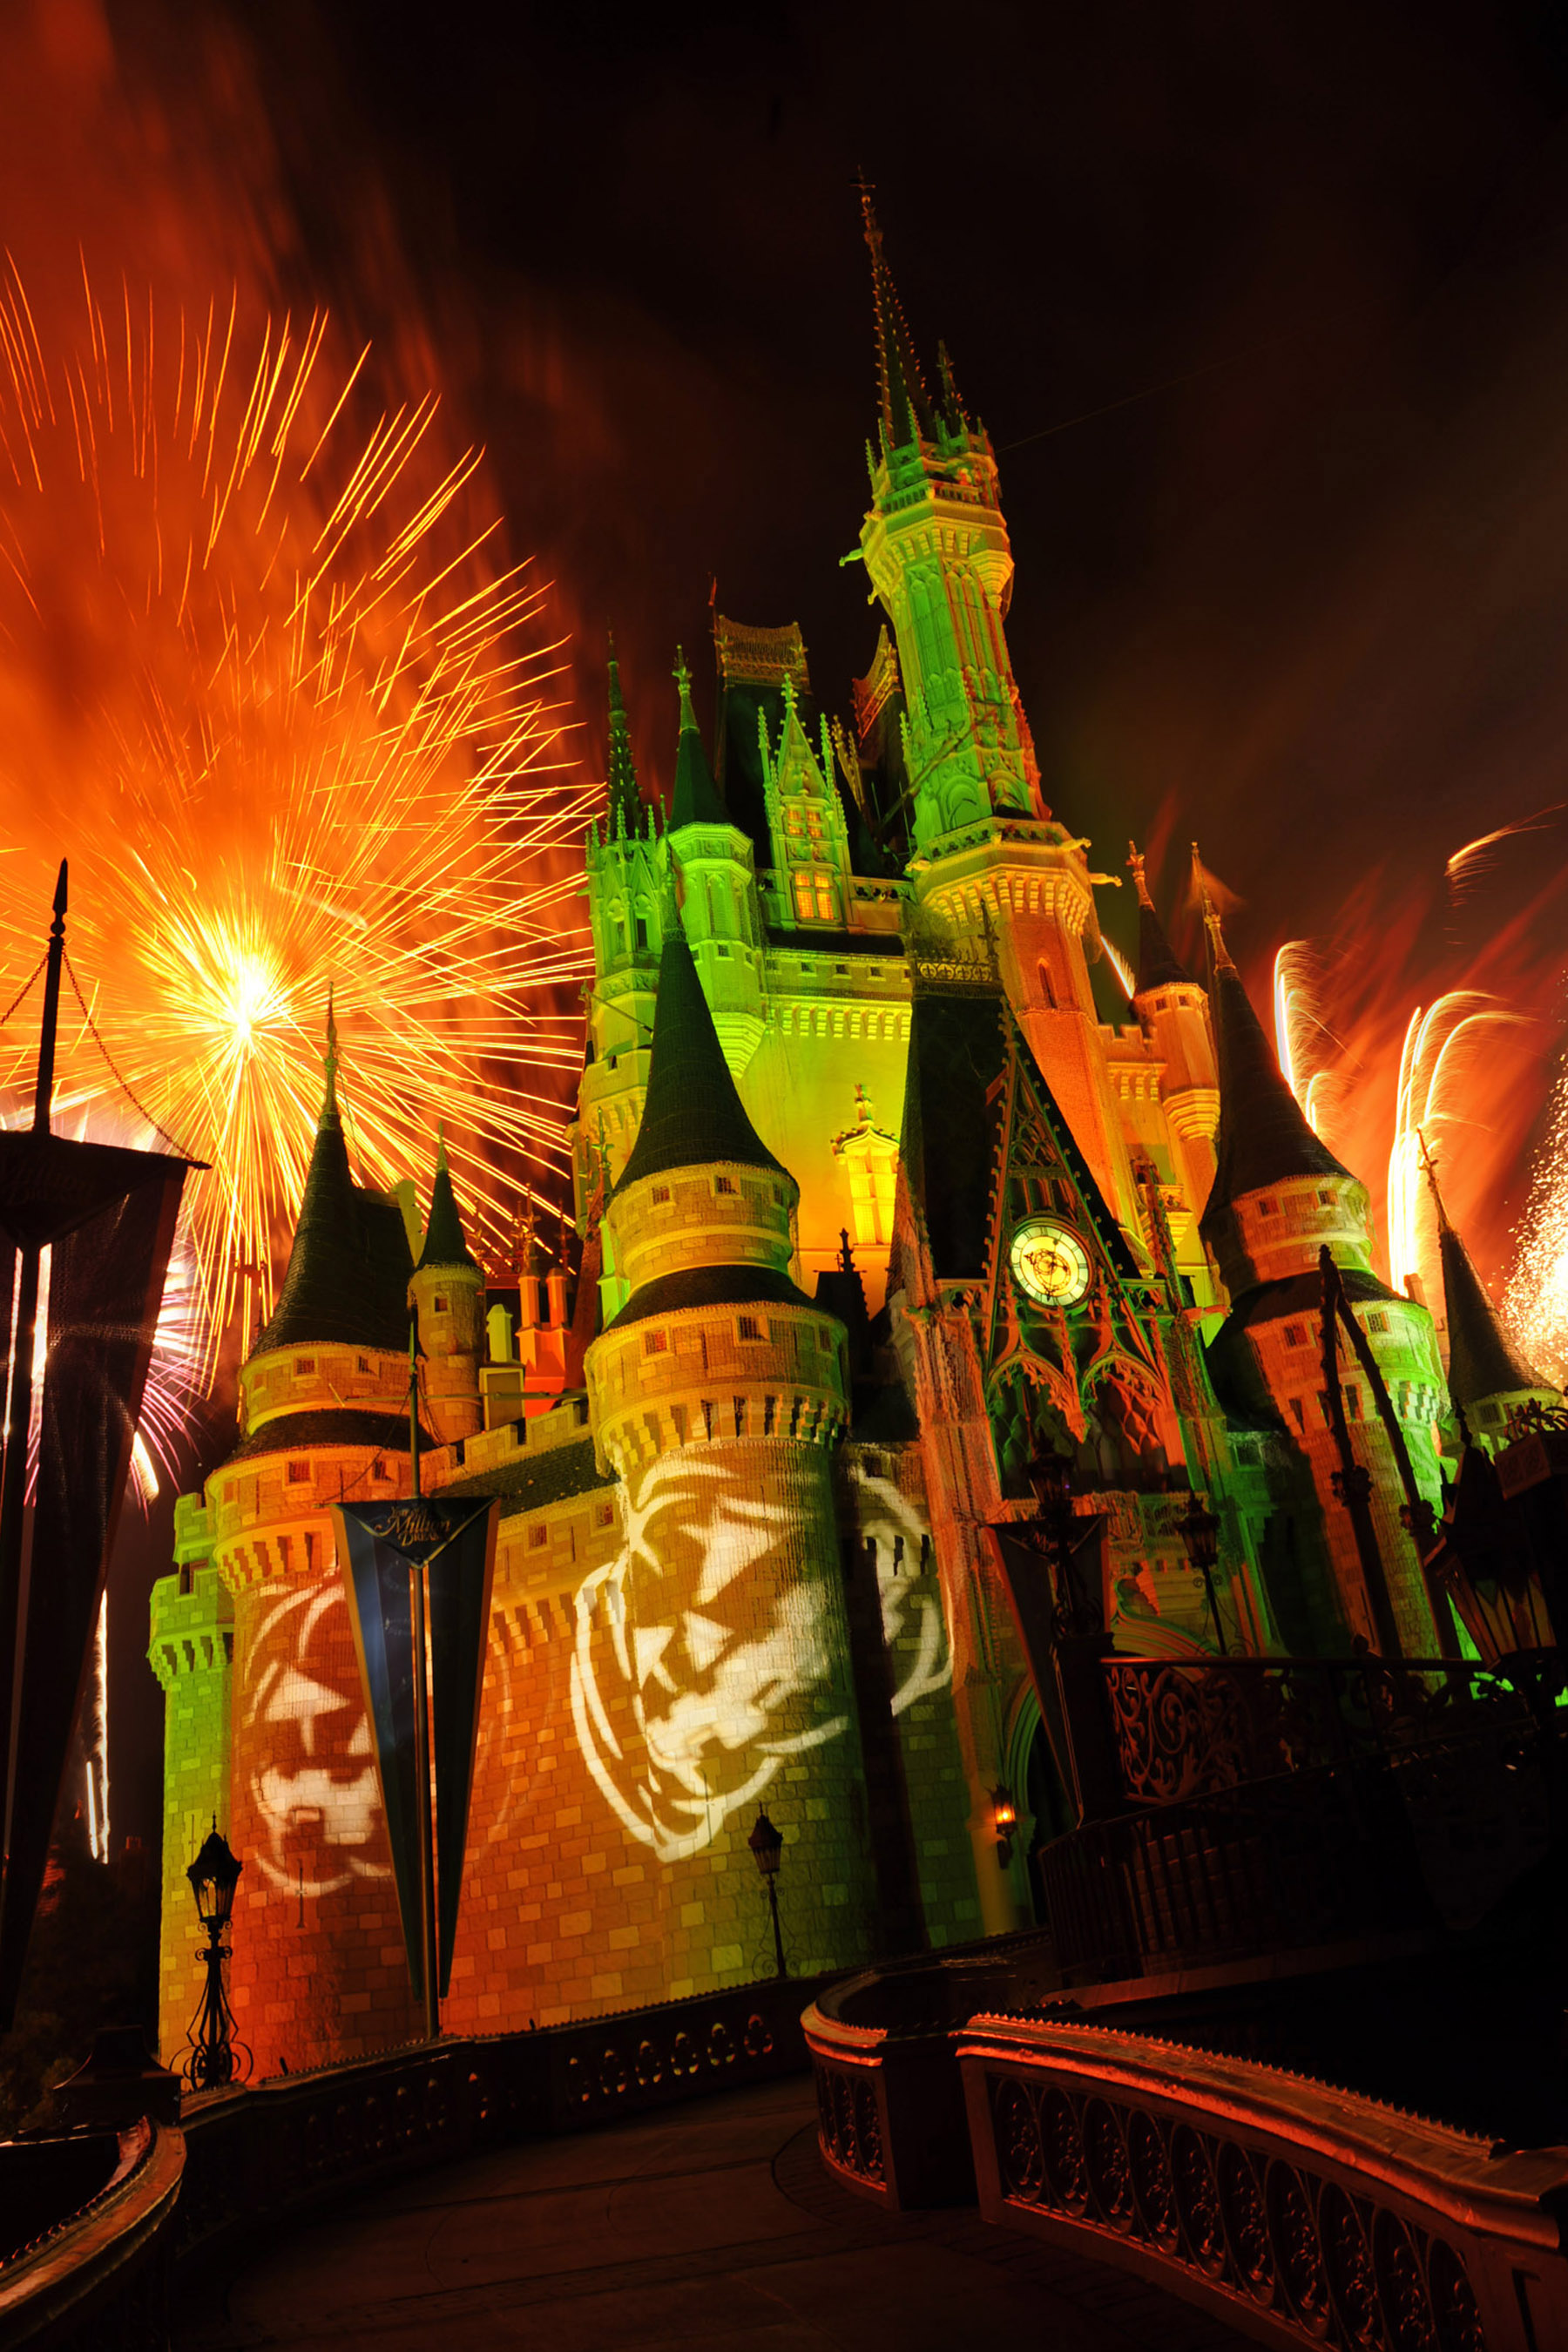 Haunting and magical halloween at walt disney world huffpost - Halloween decorations toronto ...